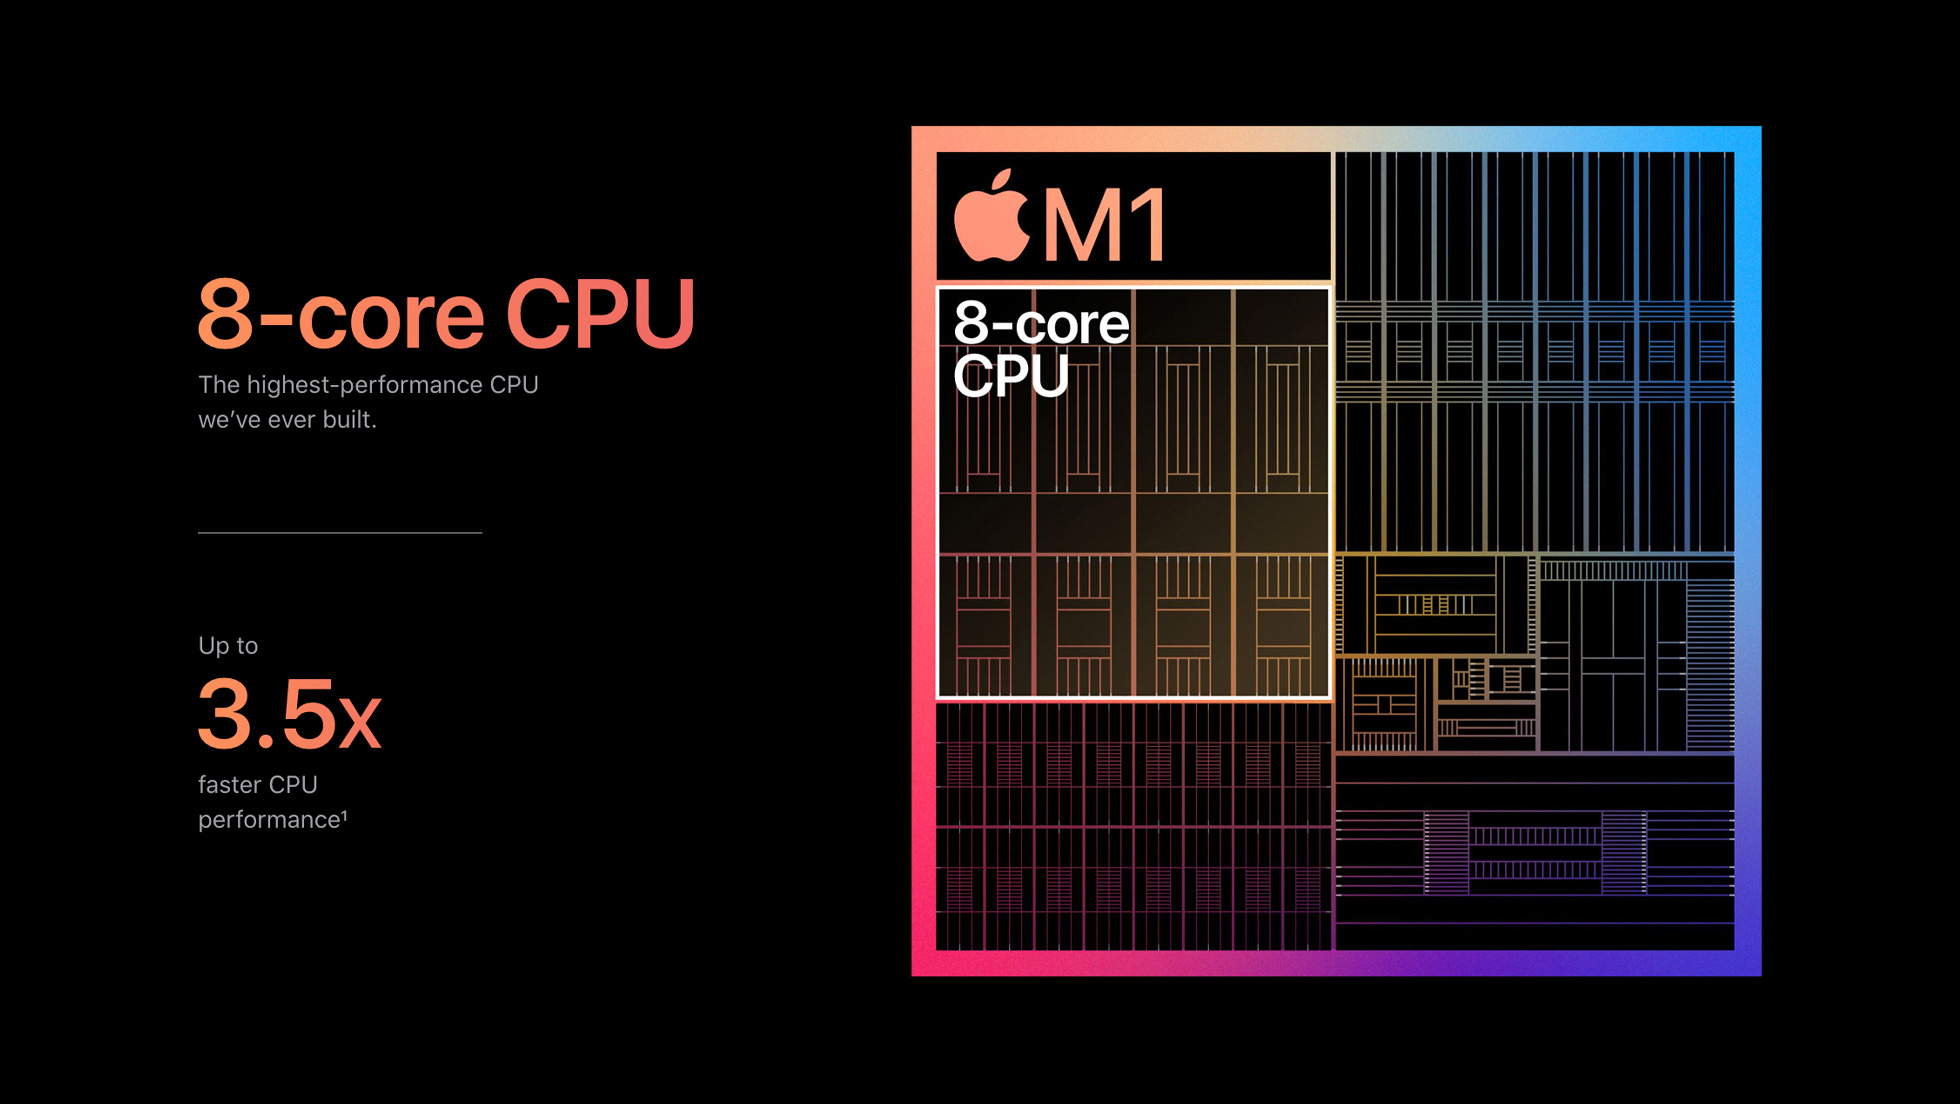 Apple M1 chip: Specs, features, iOS apps, and more - 9to5Mac